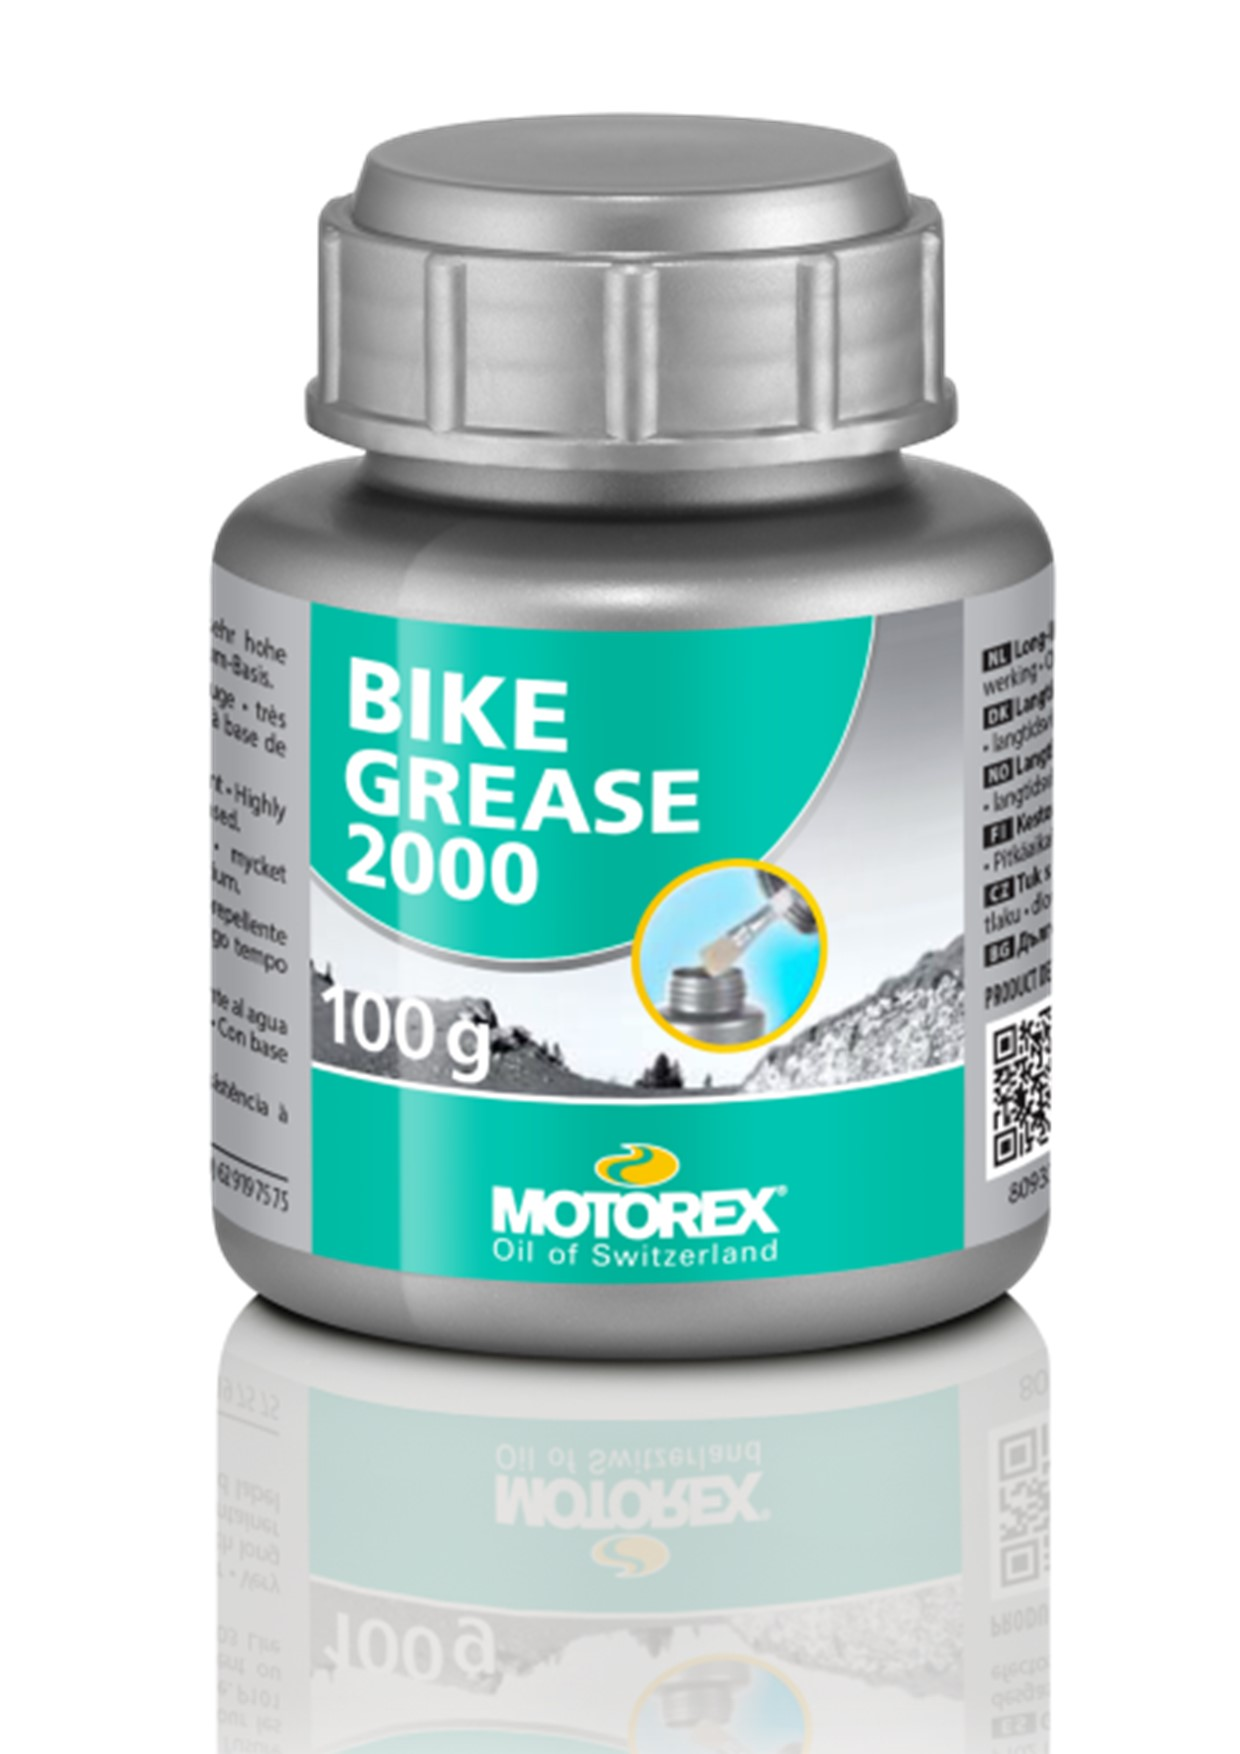 image-10729577-Bike_Grease_2000-d3d94.jpg?1600787706698